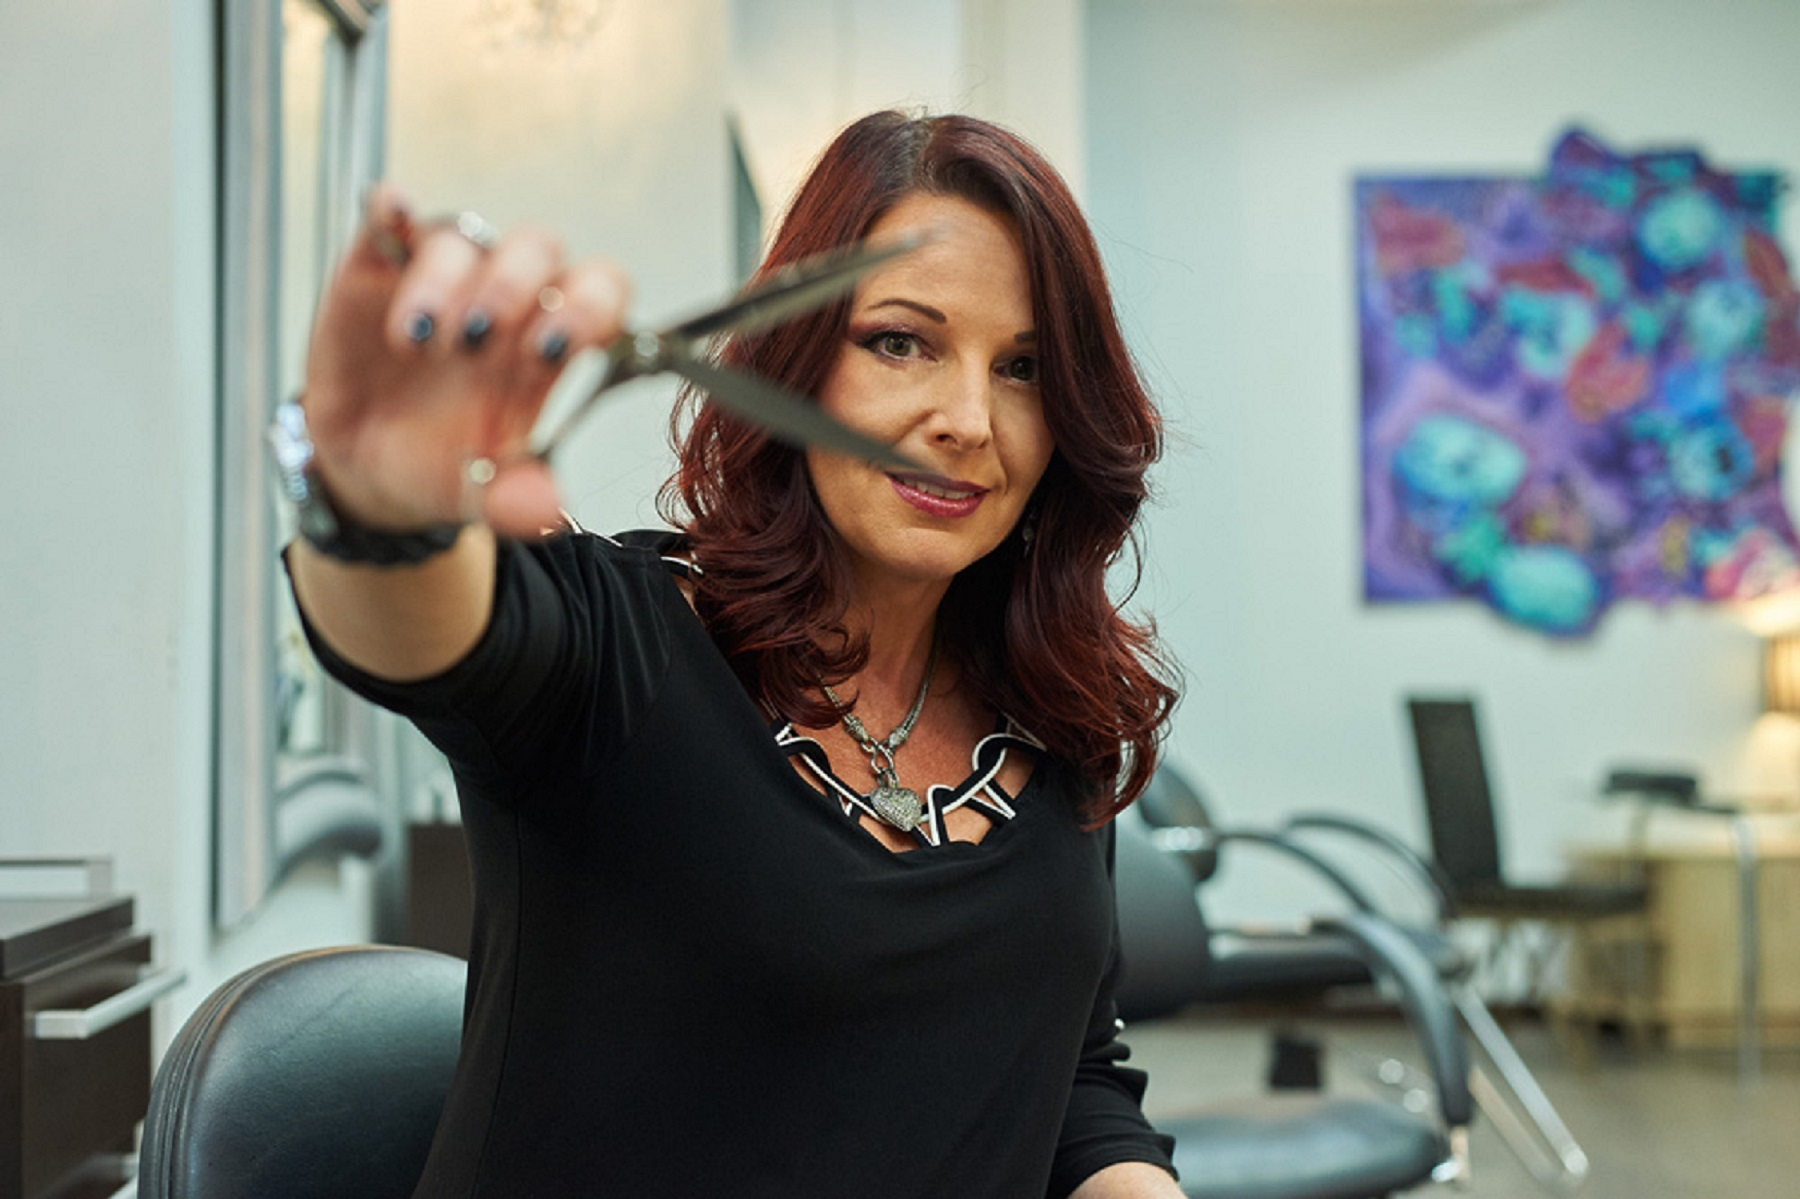 Rowena Yeager, owner of Studio Wish Salon in Twinsburg, Ohio, and her team retain clients with their talented shears.